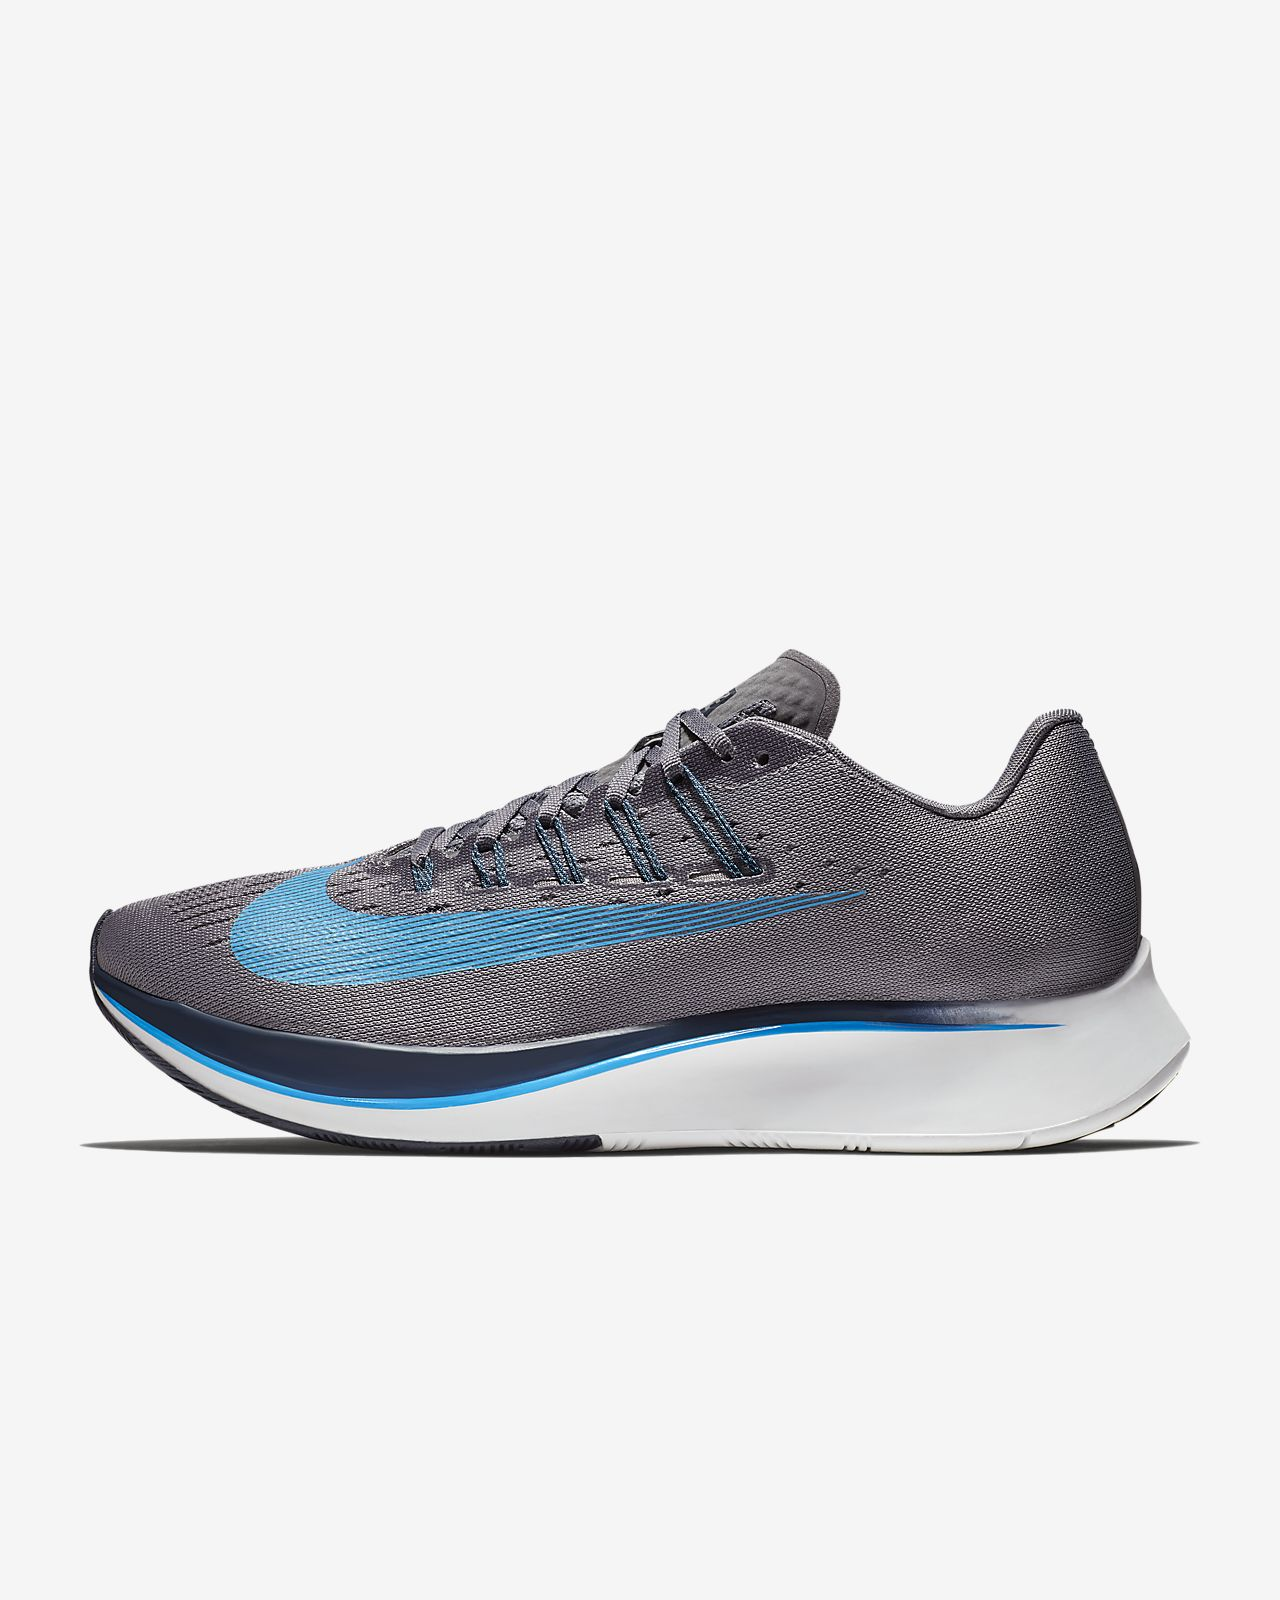 546f306d151e3 Nike Zoom Fly Men s Running Shoe. Nike.com ID